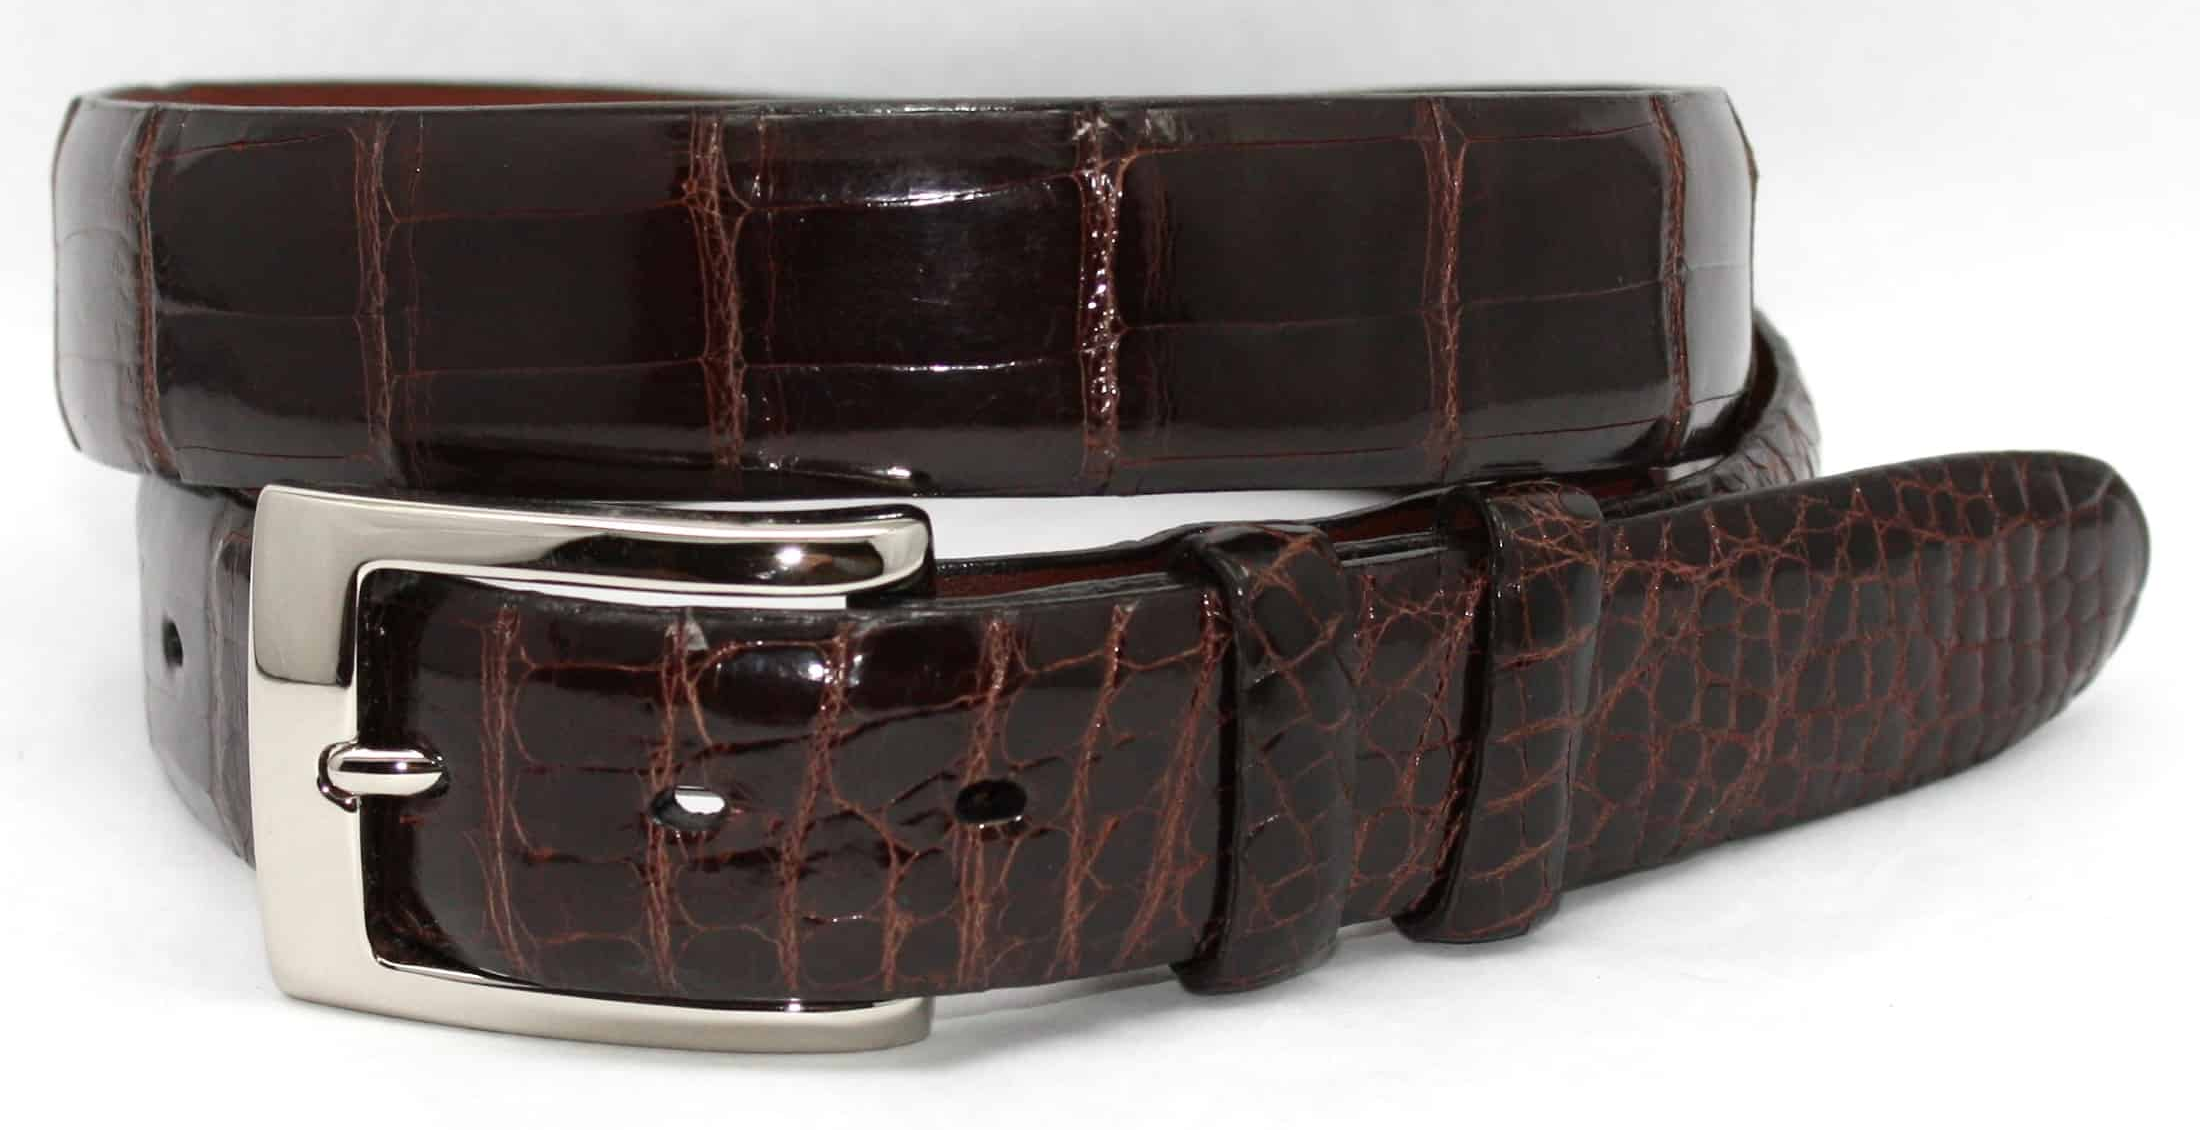 An example of an alligator leather belt